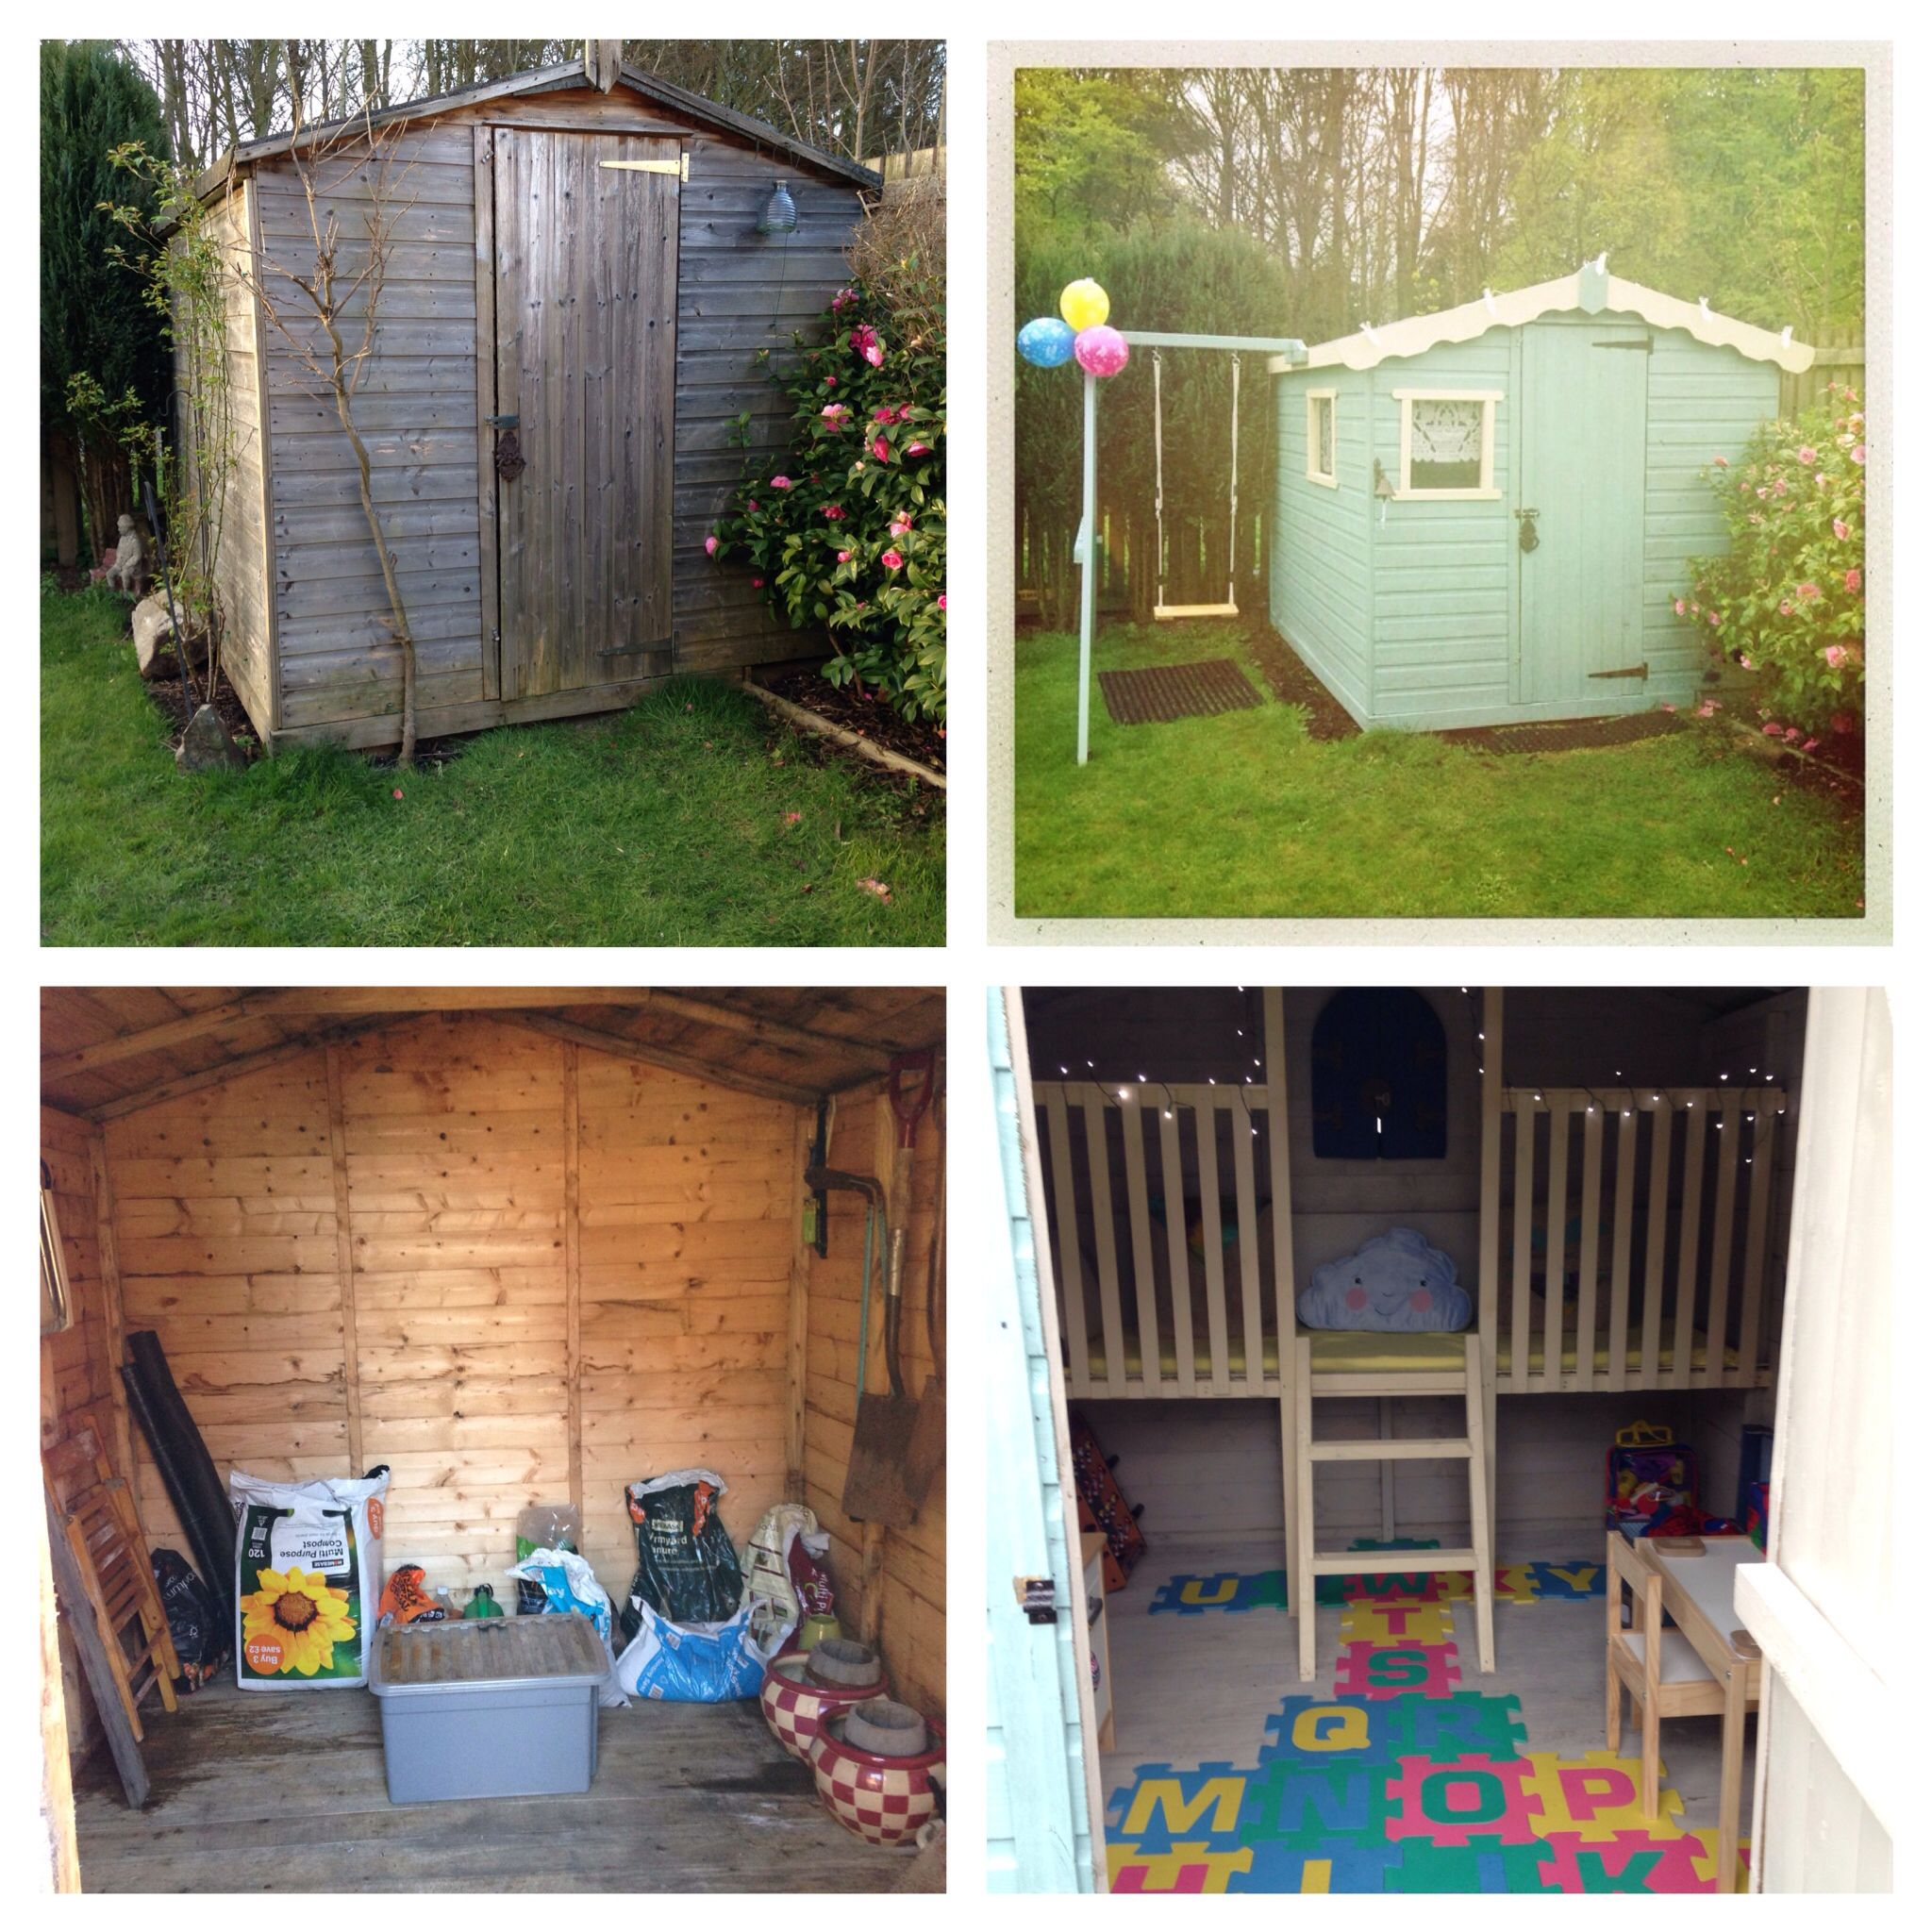 our sad old shed made into a fabulous playhouse for our kids